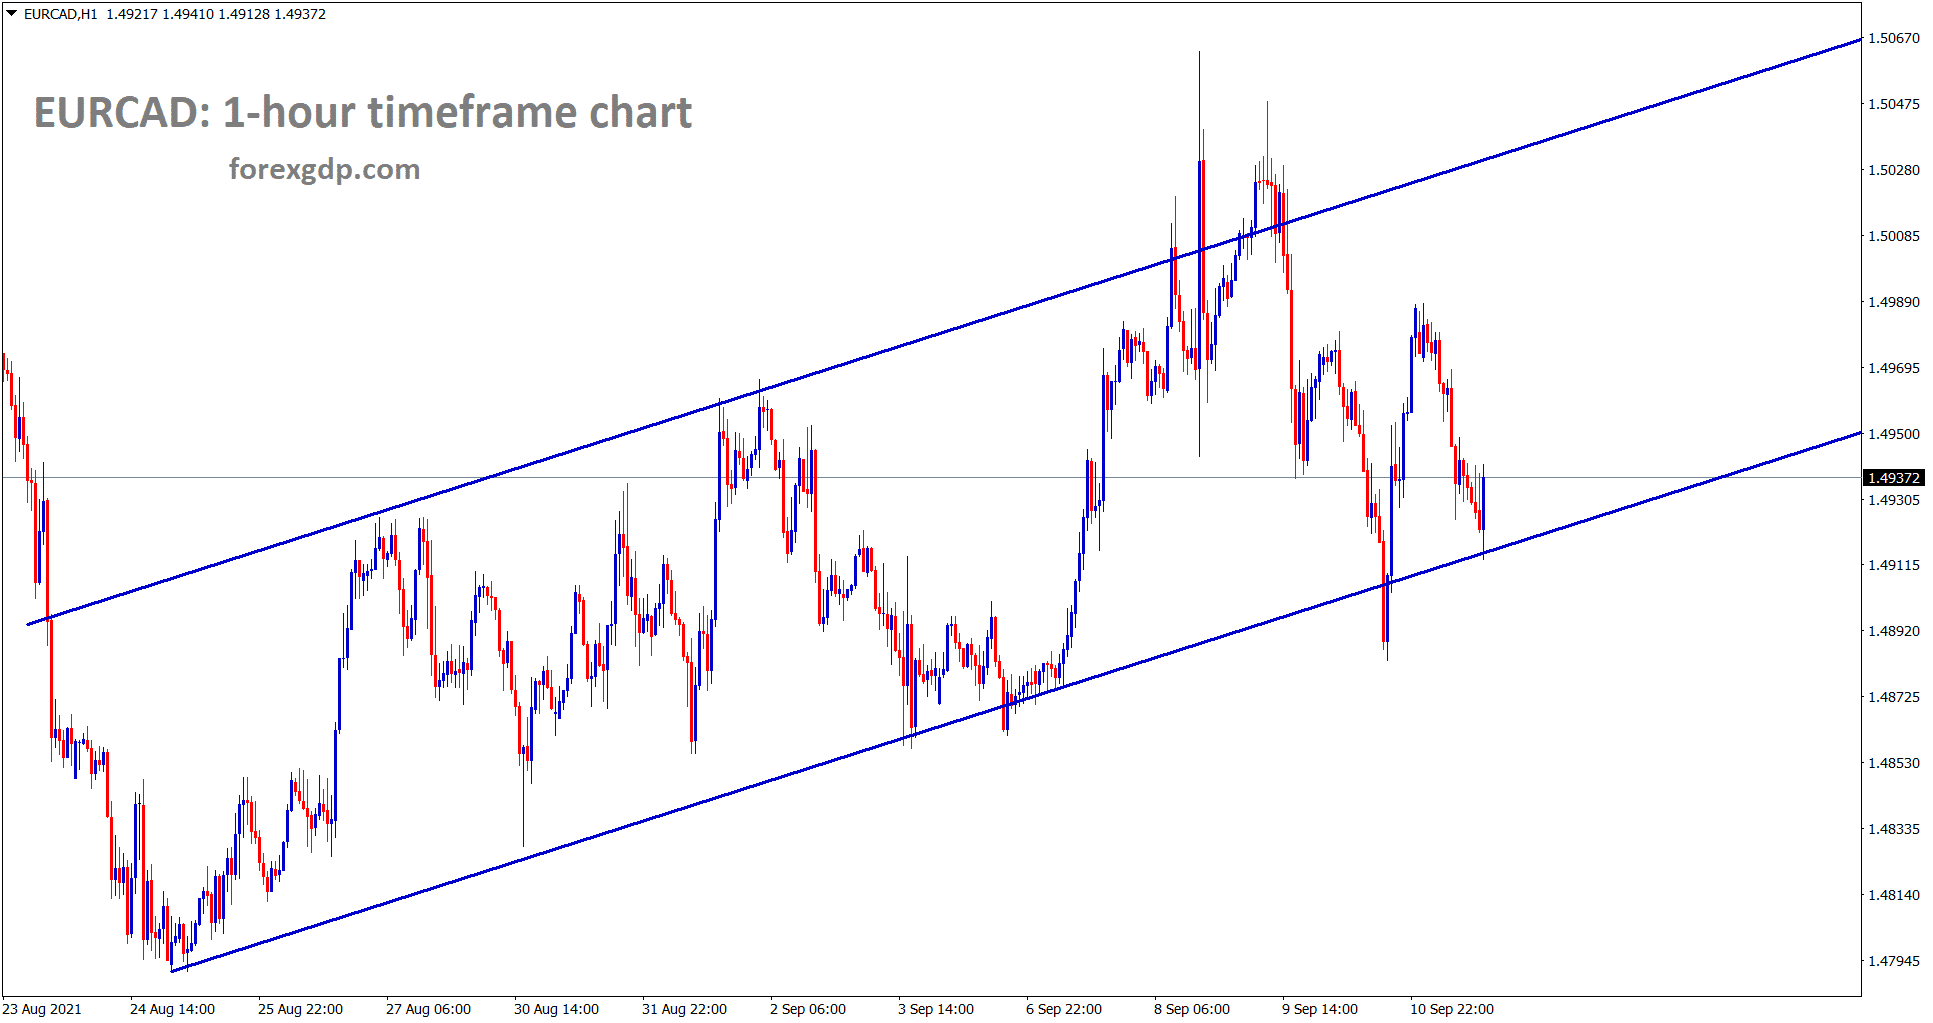 EURCAD is moving in a minor ascending channel for a long time